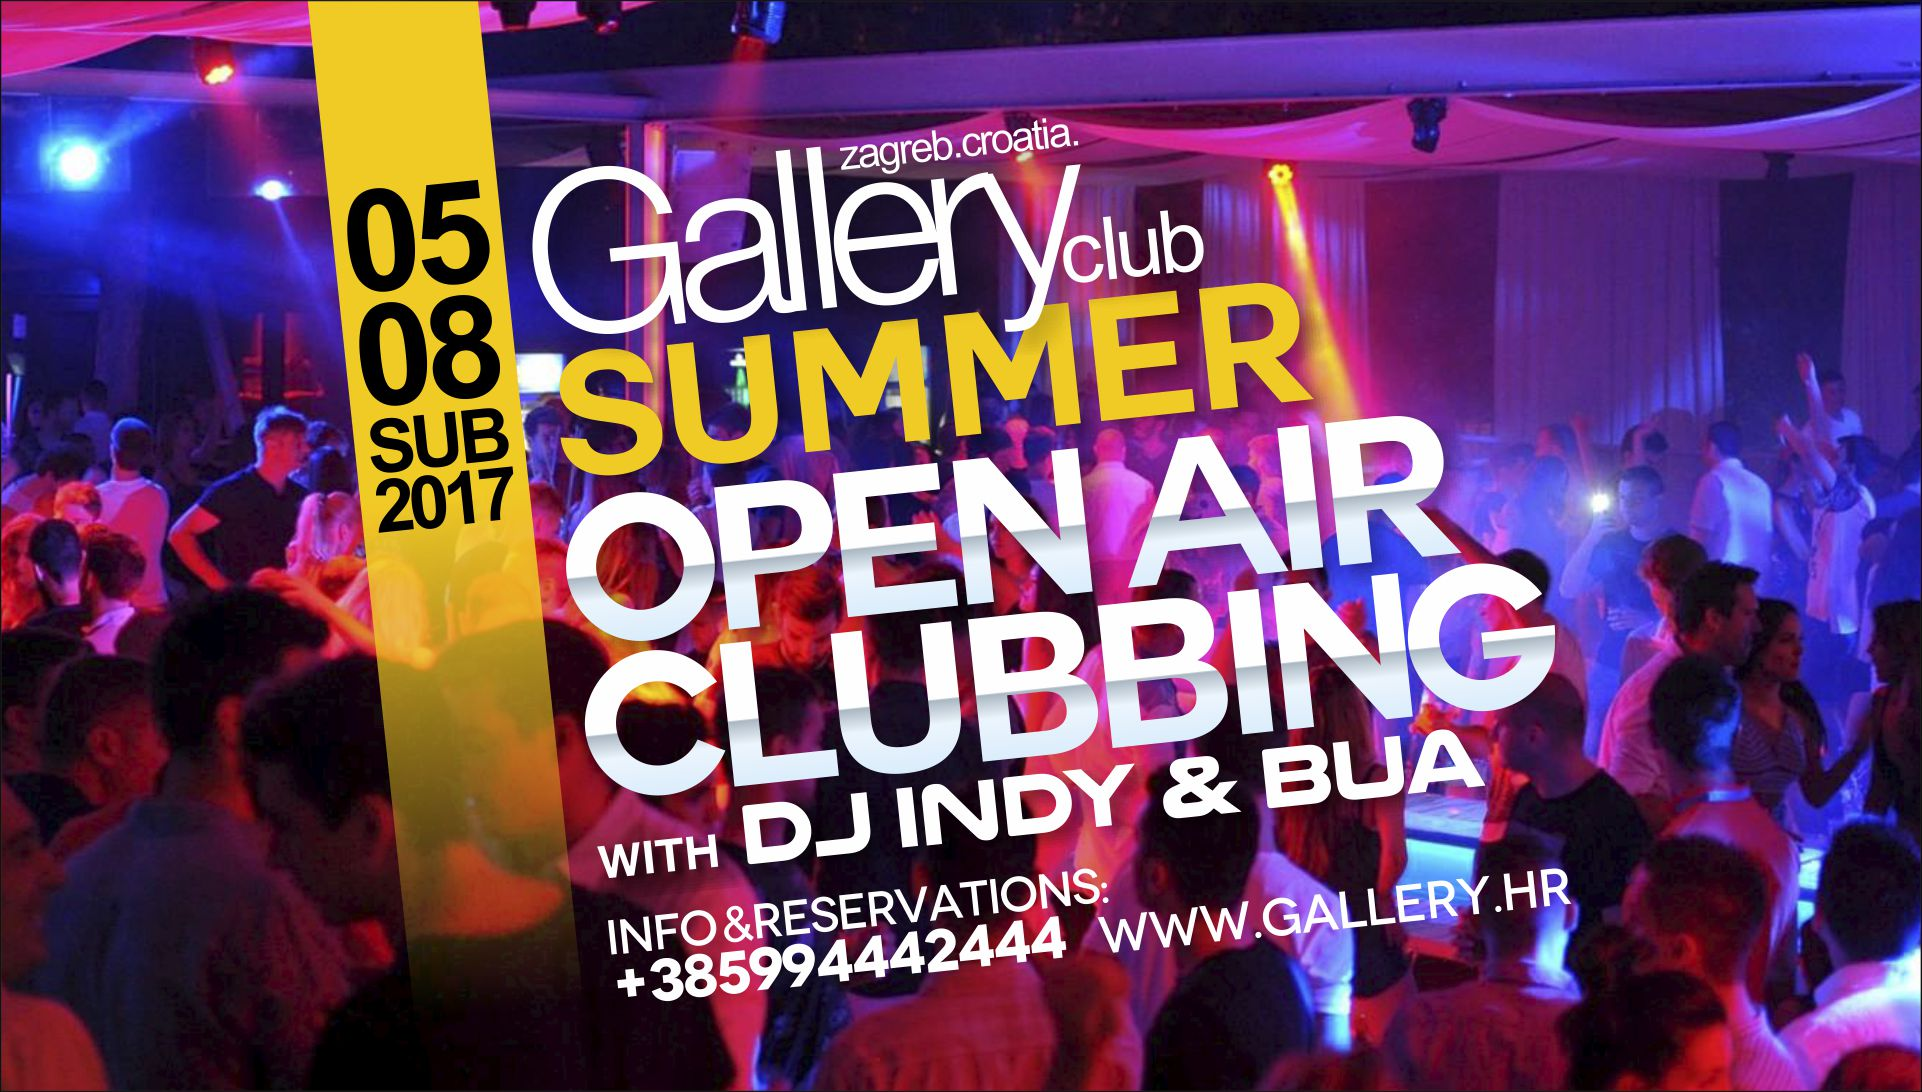 05/08/2017 SUMMER OPEN AIR CLUBBING with DJ INDY & DJ BUA